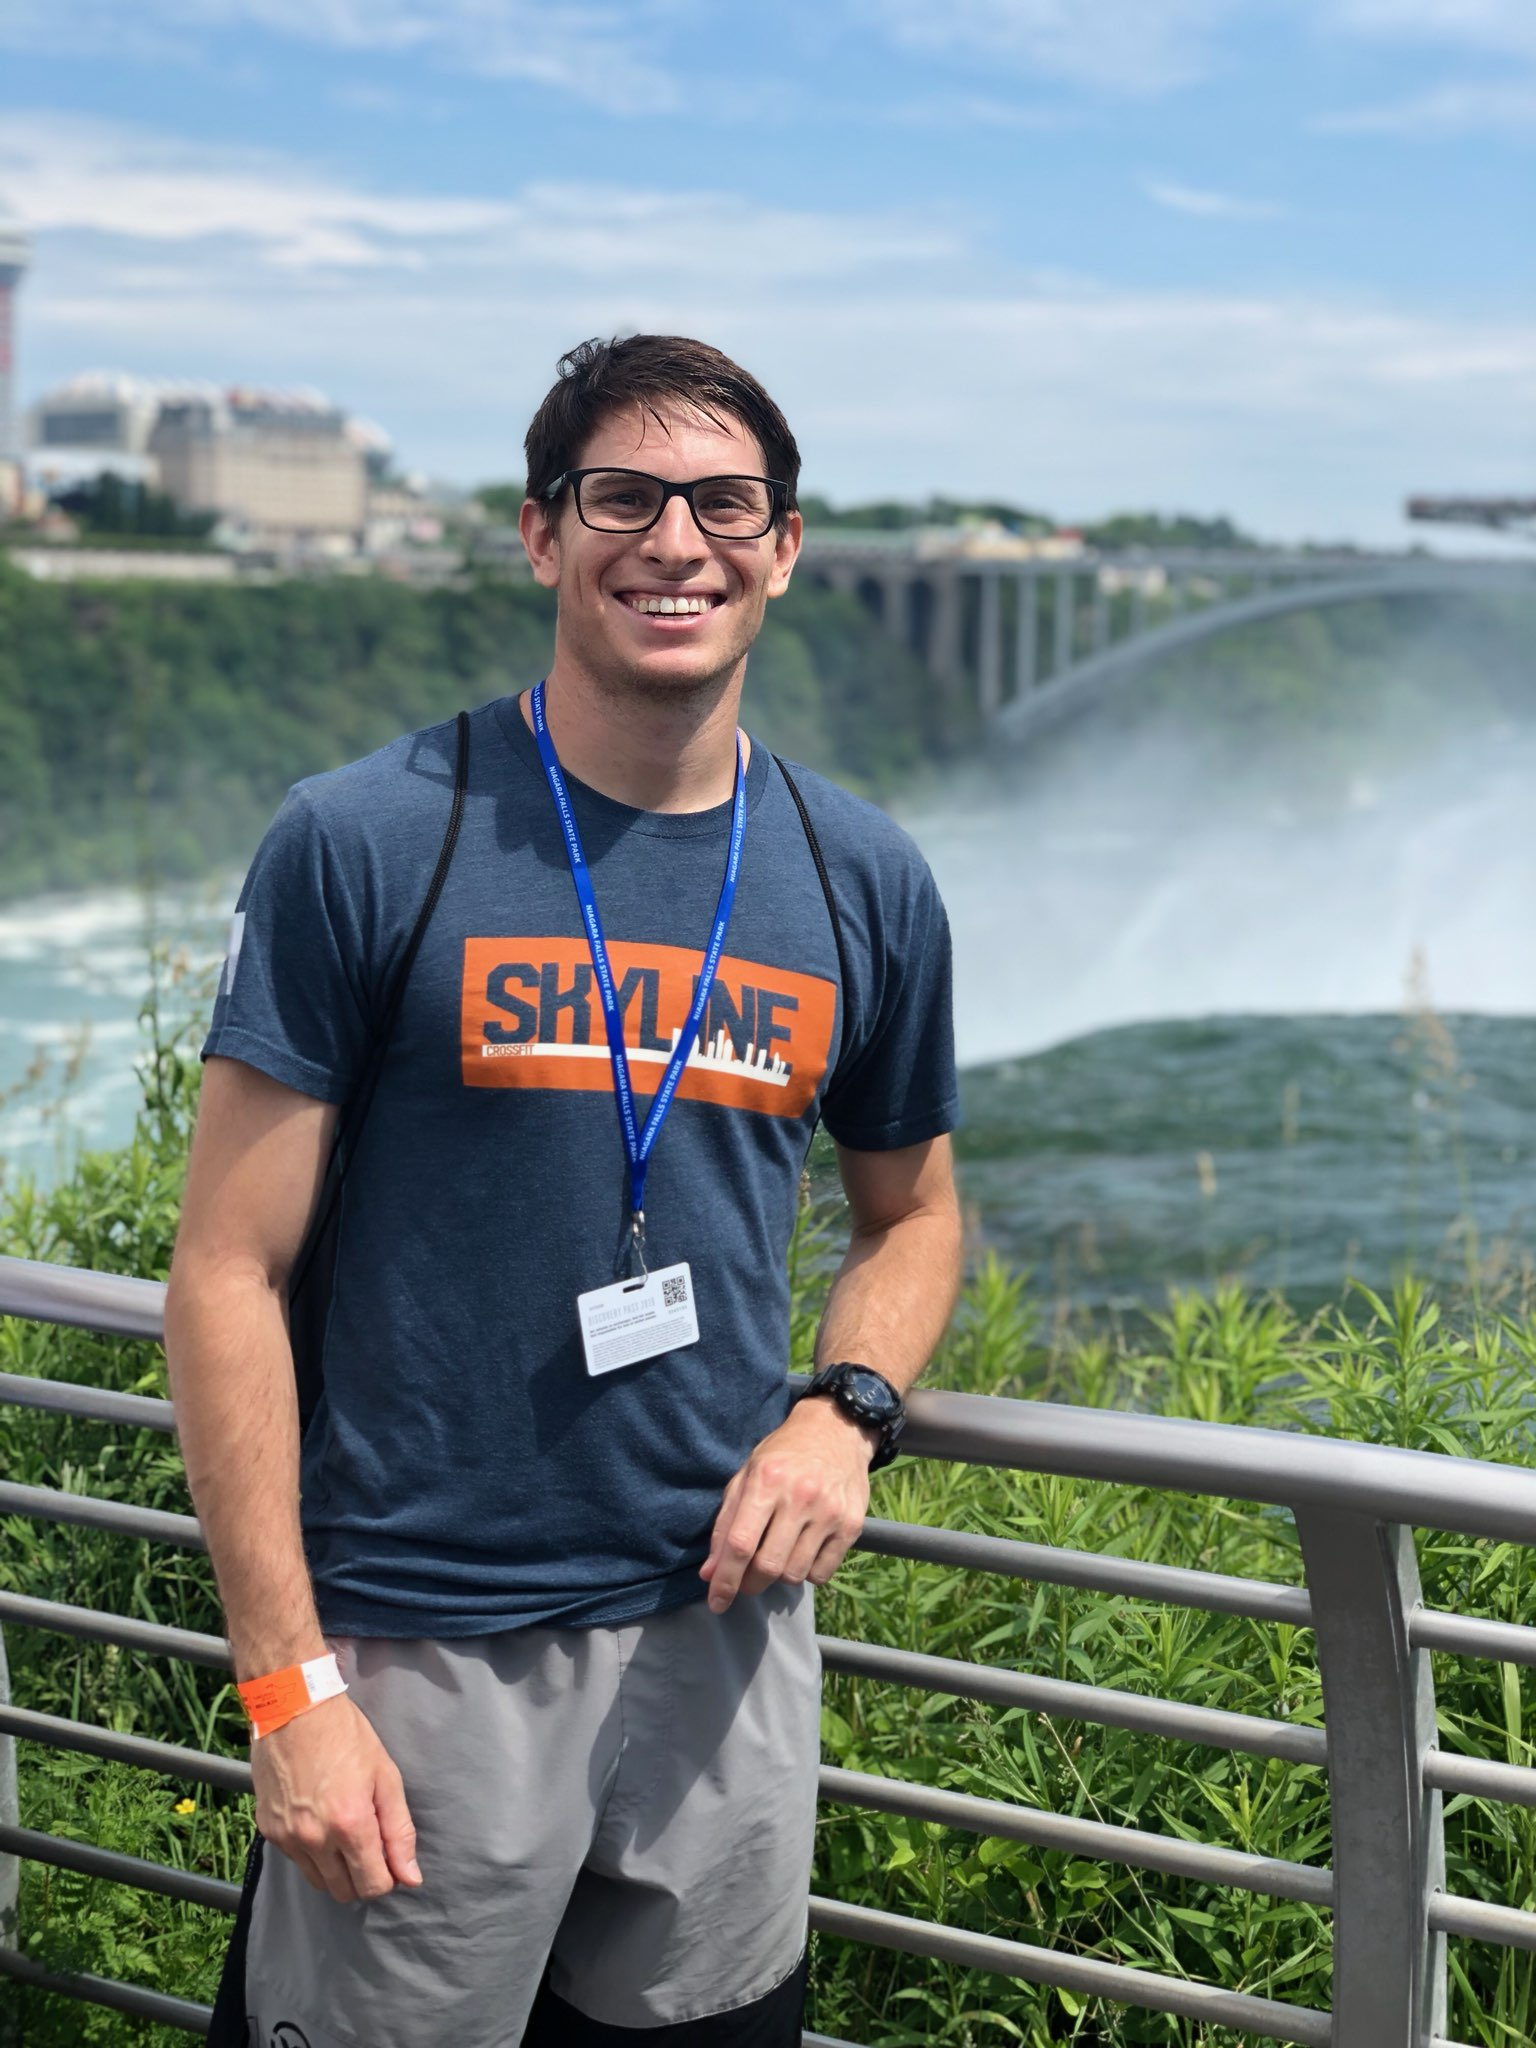 Vincent repping Skyline at Niagara Falls last month.